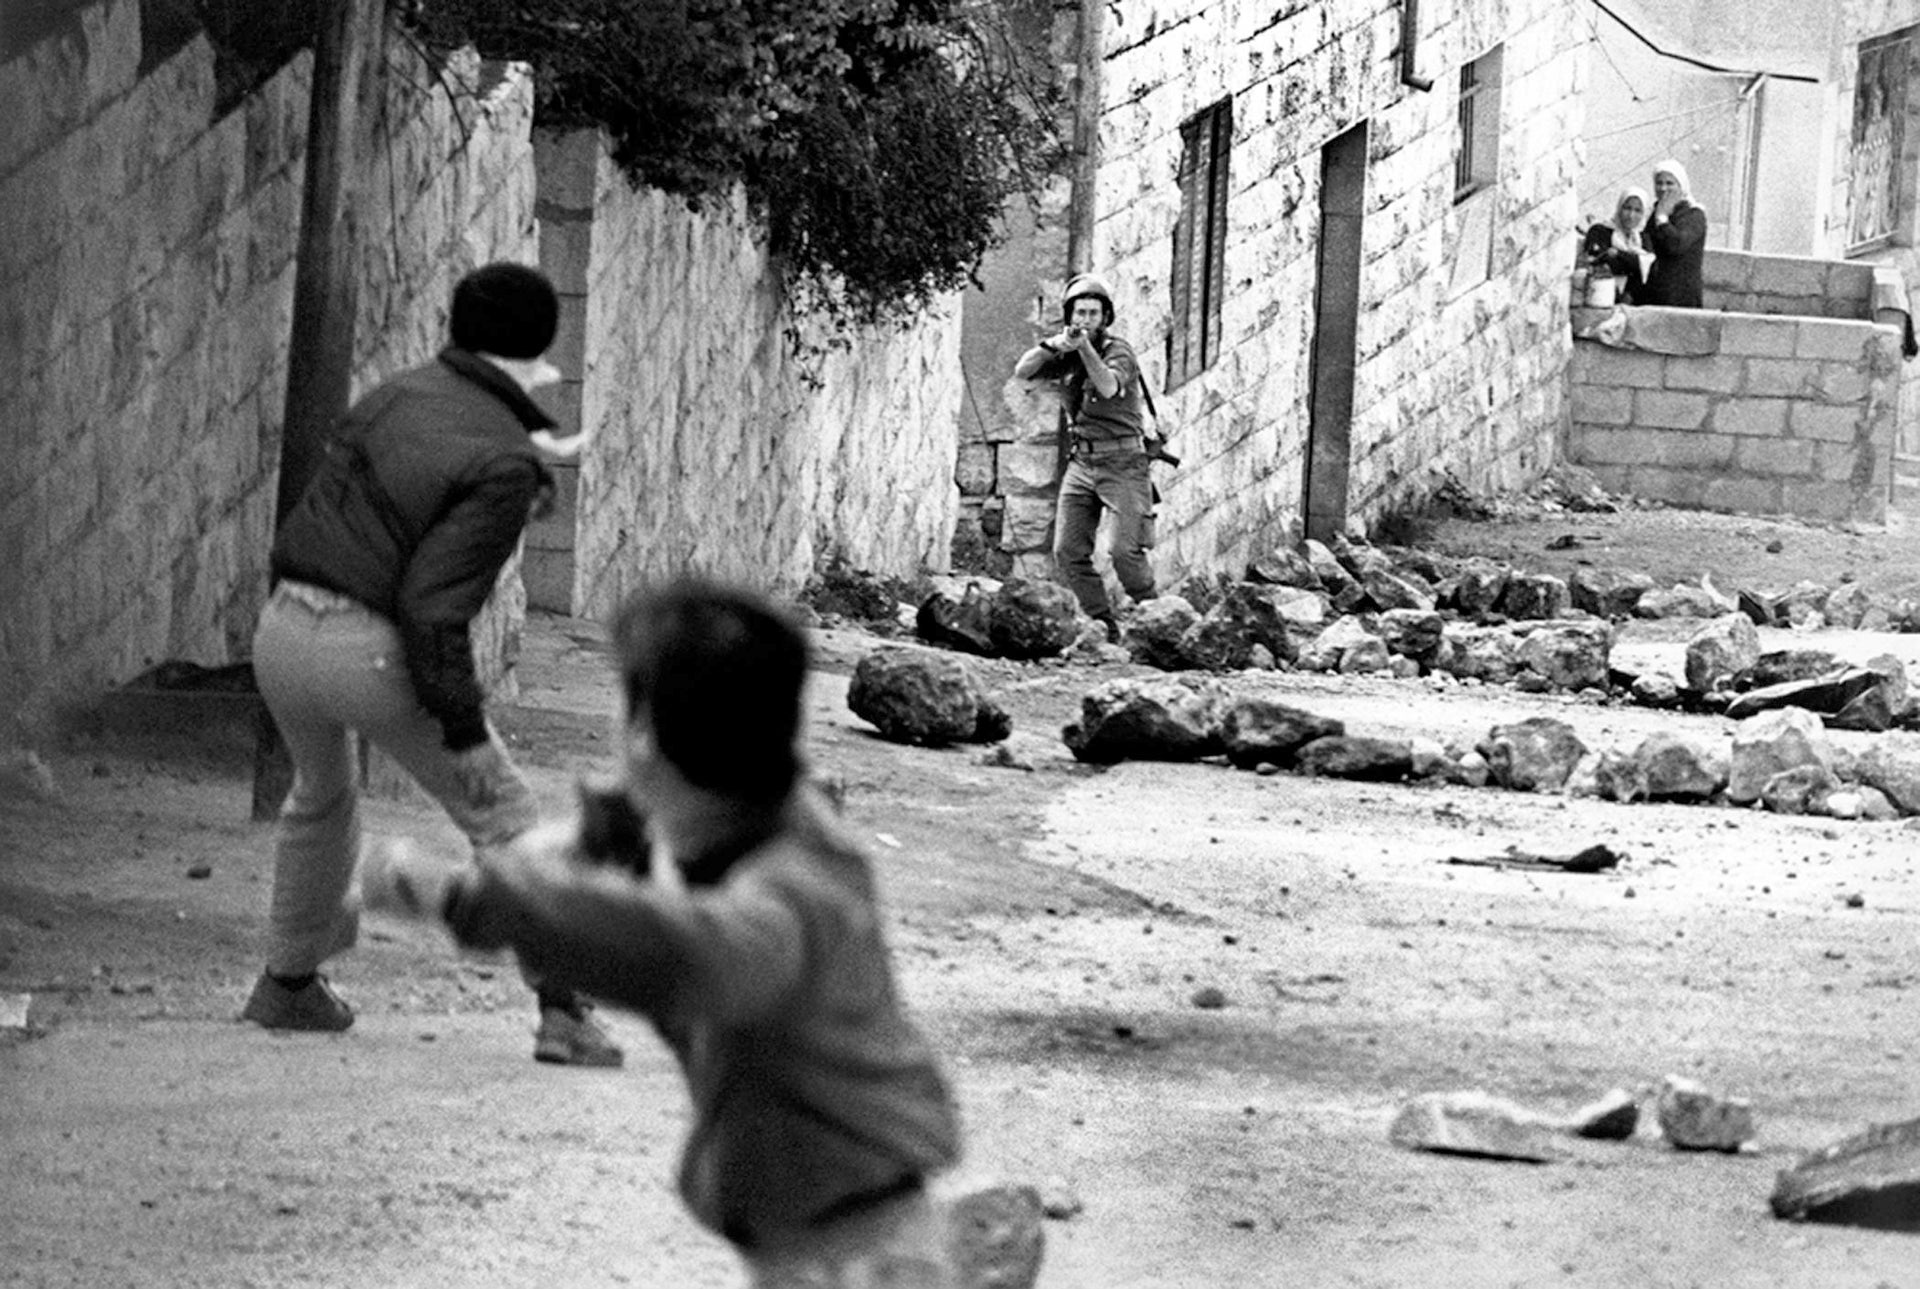 Palestinians throw rocks at Israeli troops in Anabta during the first intifada, 1989.